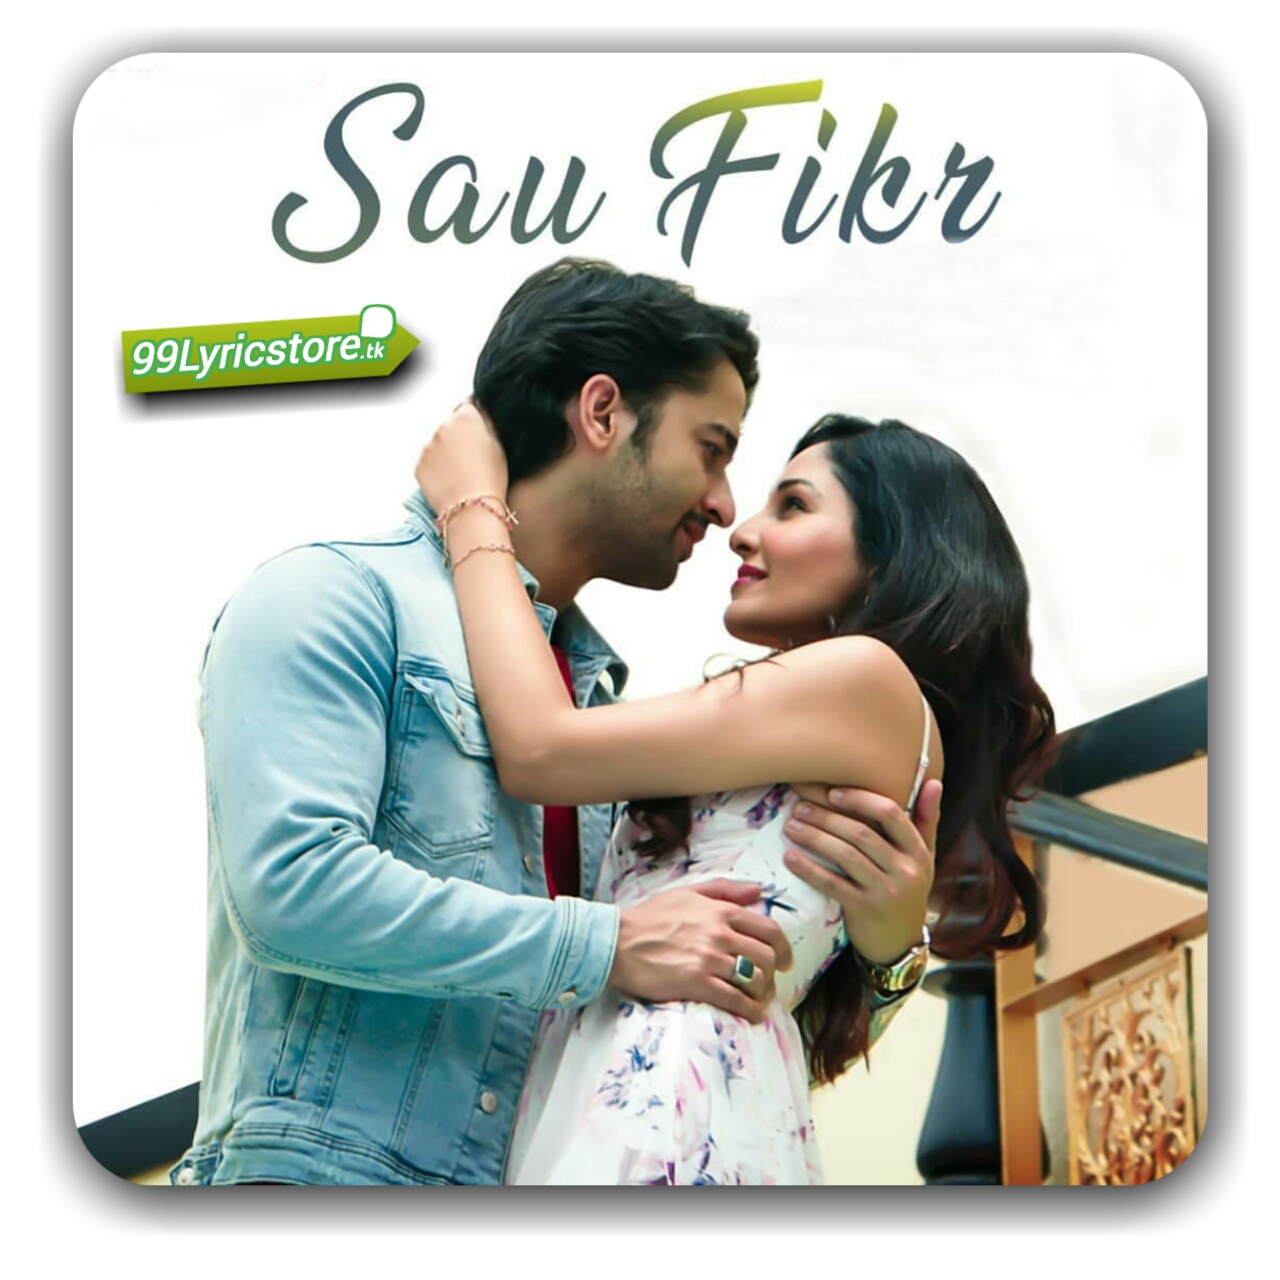 Sau Fikr image, Sau Fikr album song 2018, Sau Fikr album song lyrics 2018, Bishwajit Ghosh Song Lyrics, Album song Sau Fikr Song Lyrics,Hindi song lyrics, love song , love sad song lyrics, love song lyrics